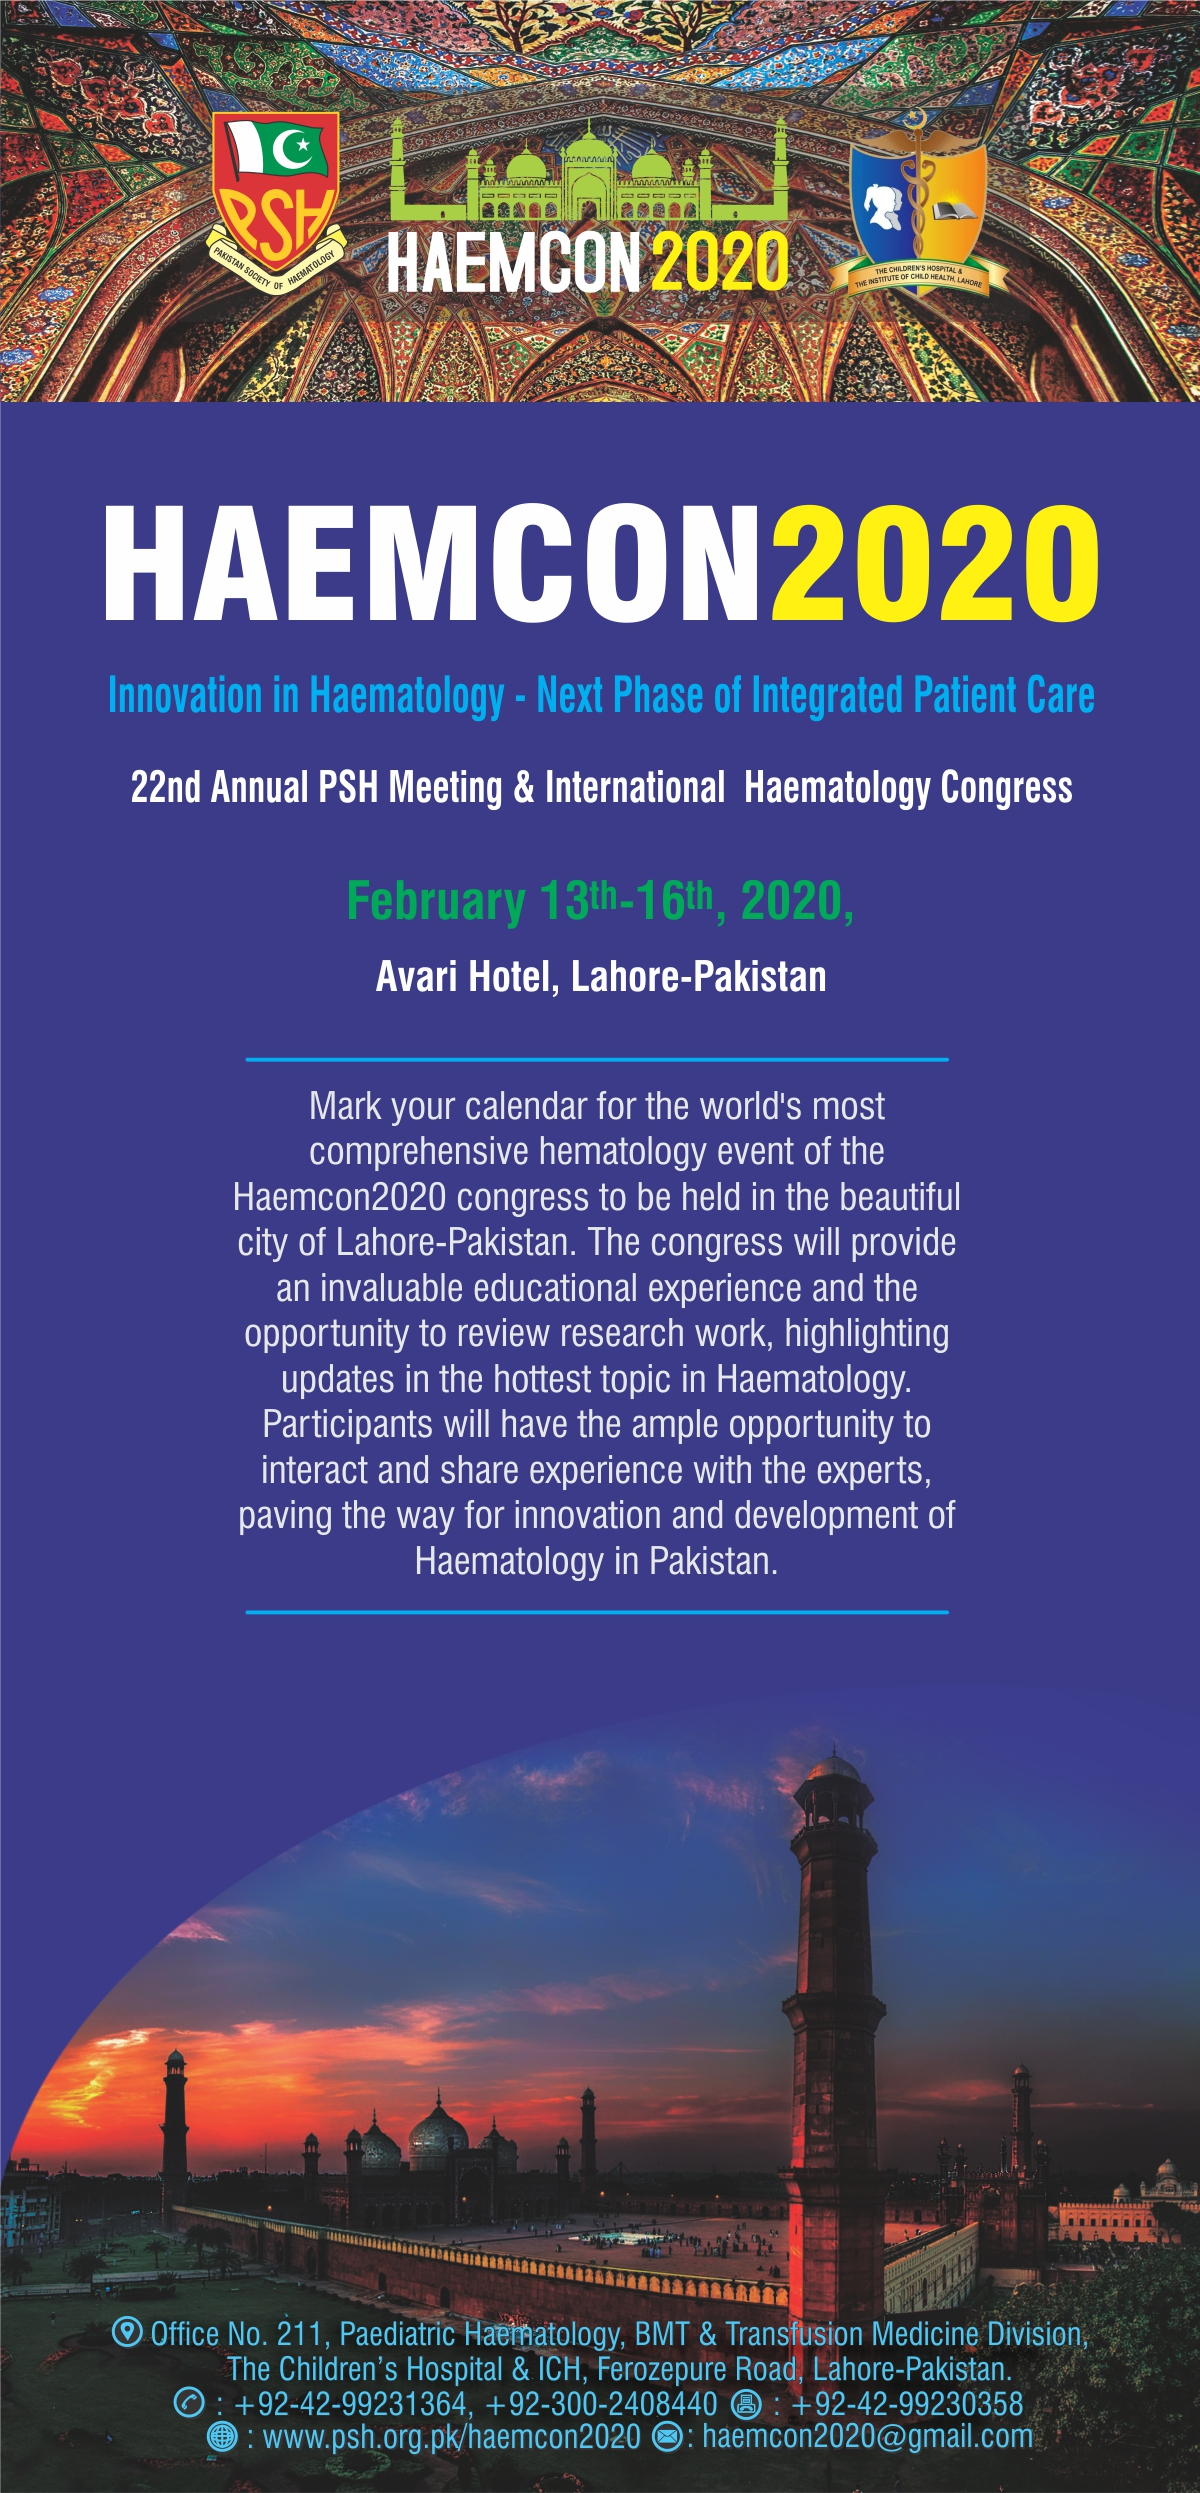 Innovation in Haematology - Next Phase of Integrated Patient Care | 22nd Annual PSH Meeting & International Haematology Congress | February 13 - 16, 2020 | Avari Hotel, Lahore - Pakistan